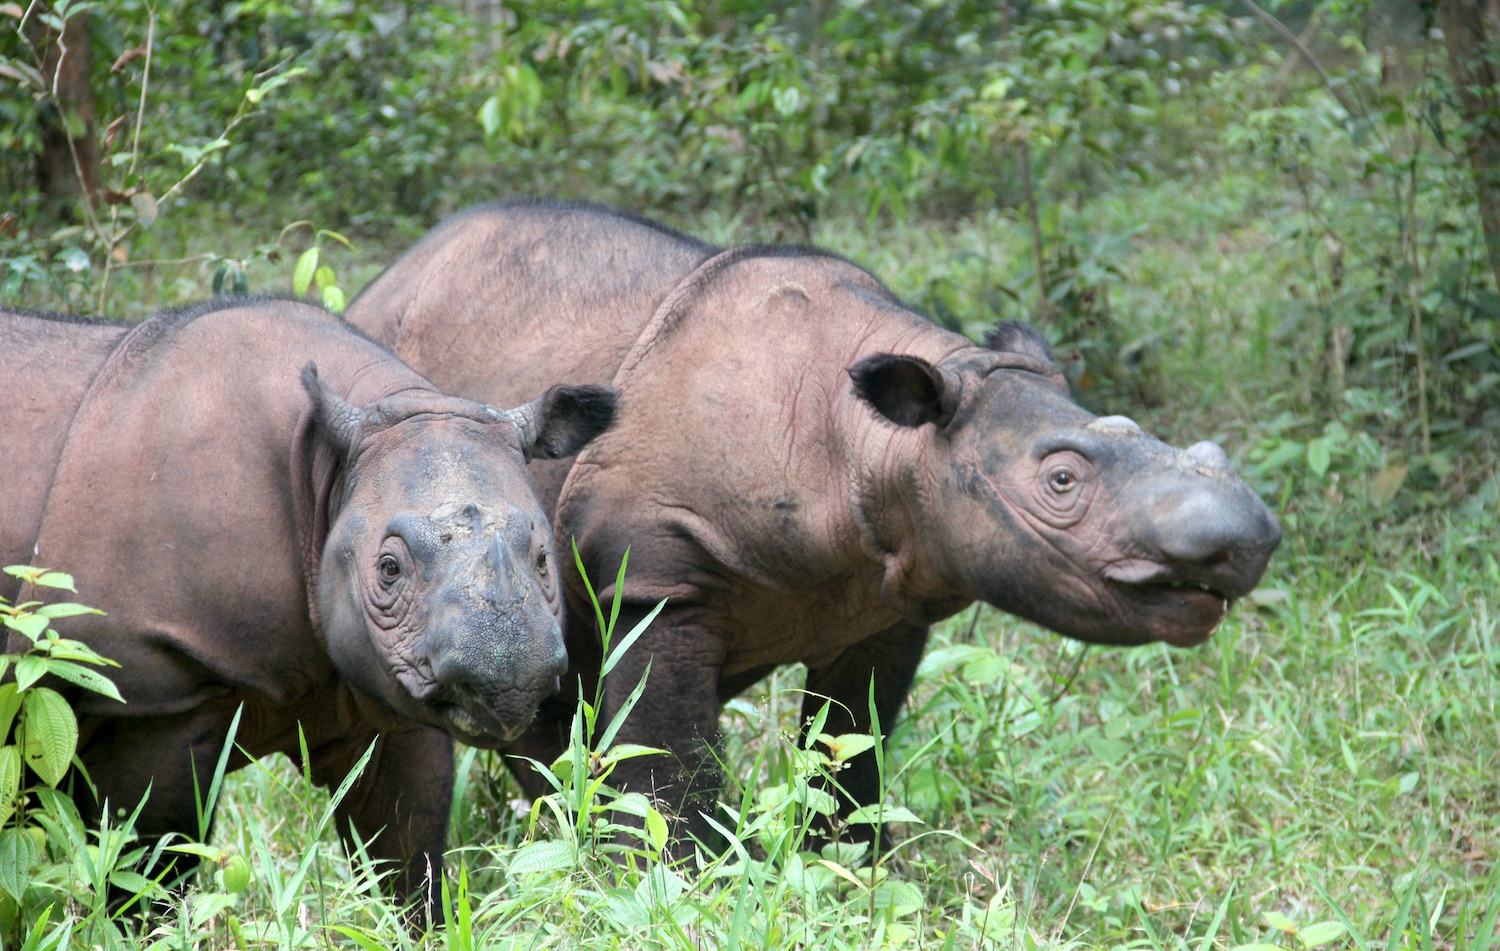 Mother and daughter: Ratu (right) and Delilah (left), photographed in 2017 at the Sumatran Rhino Sanctuary in Indonesia's Way Kambas National Park. Delilah is now nearing the age of sexual maturity, but is closely related to all of the male rhinos at the sanctuary. Image by Jeremy Hance for Mongabay.